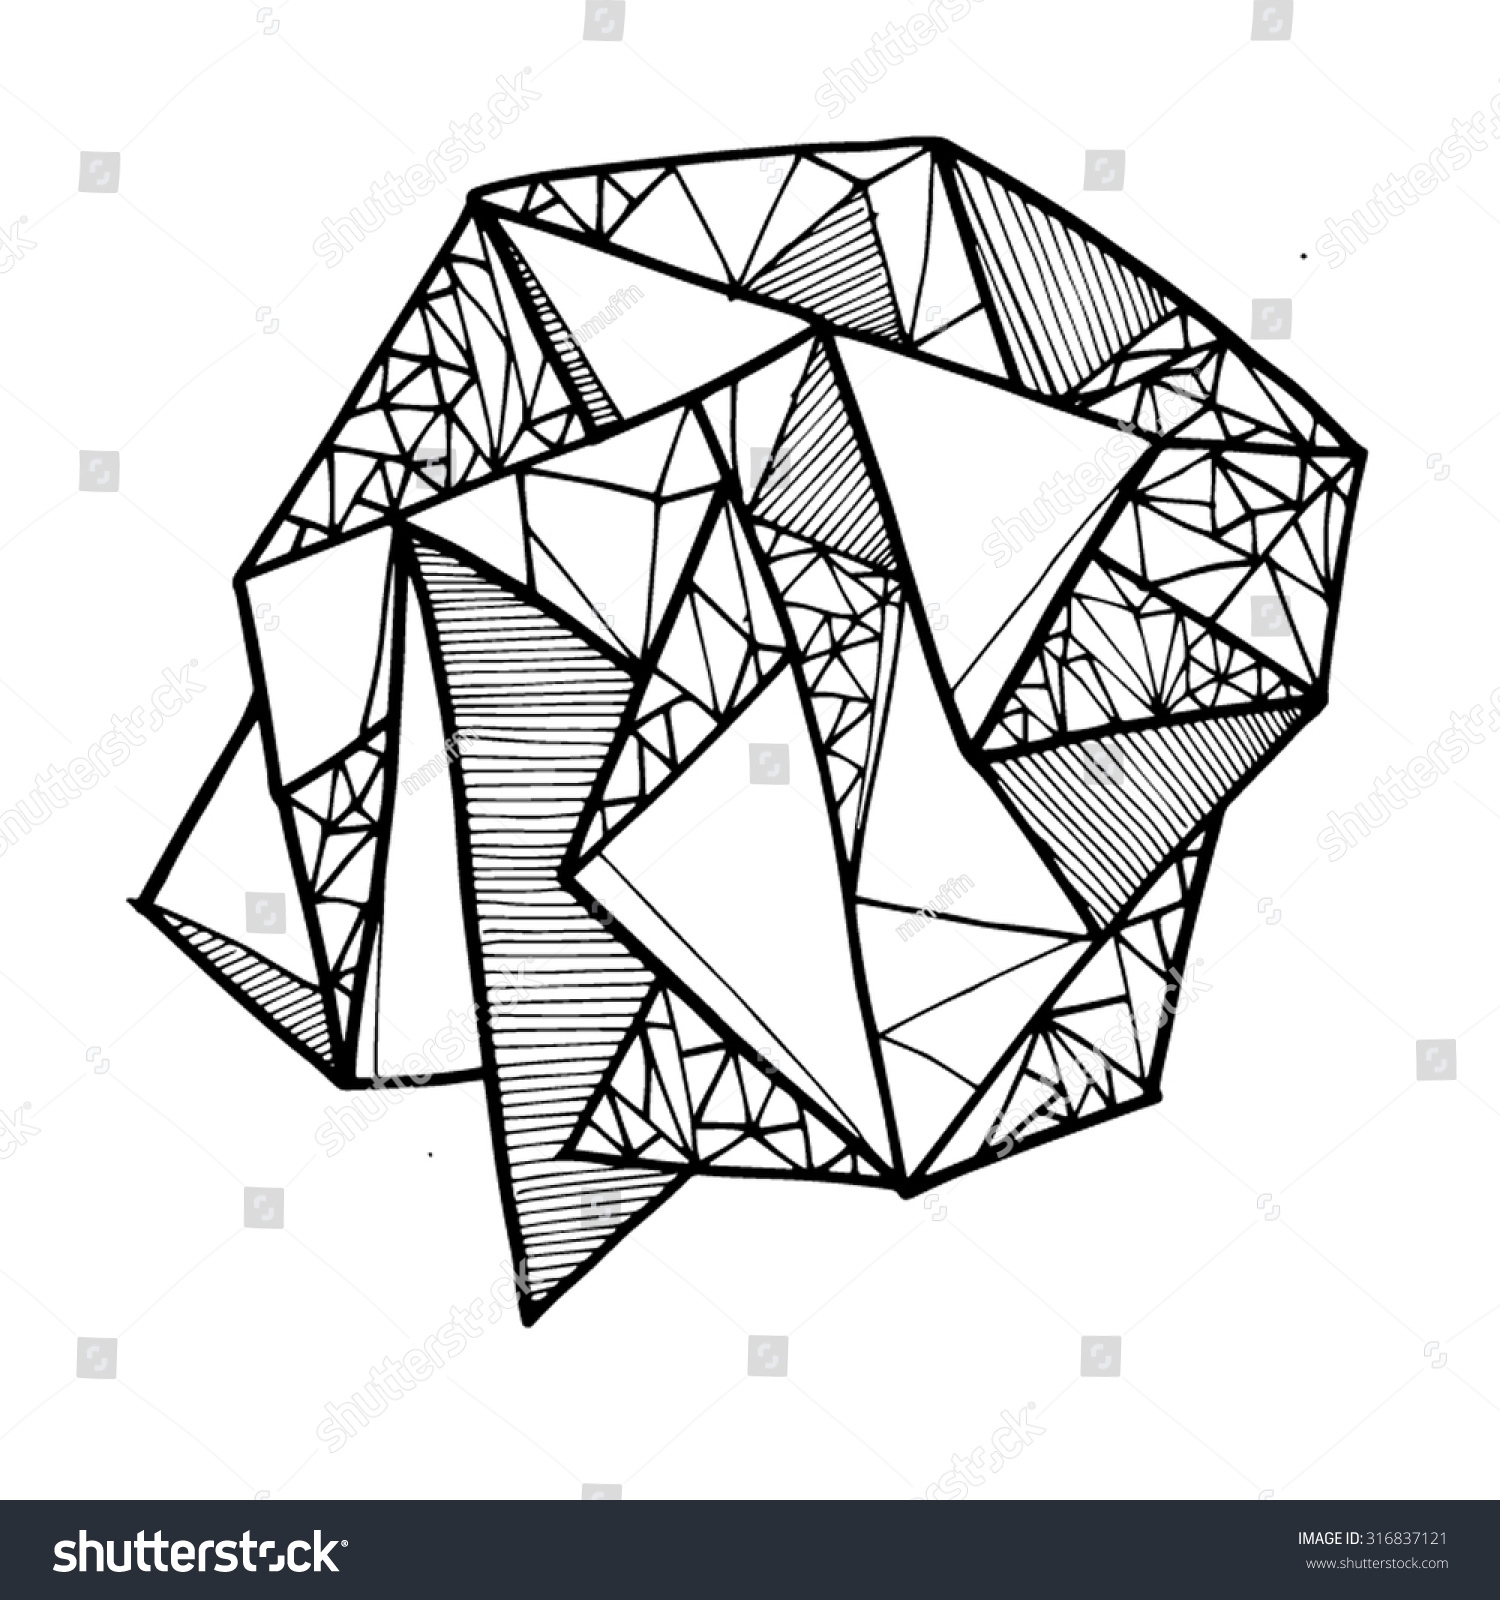 Geometric Shape Lines Lineart Shapes Line Art Arts Illustration Illustrations Design Designs